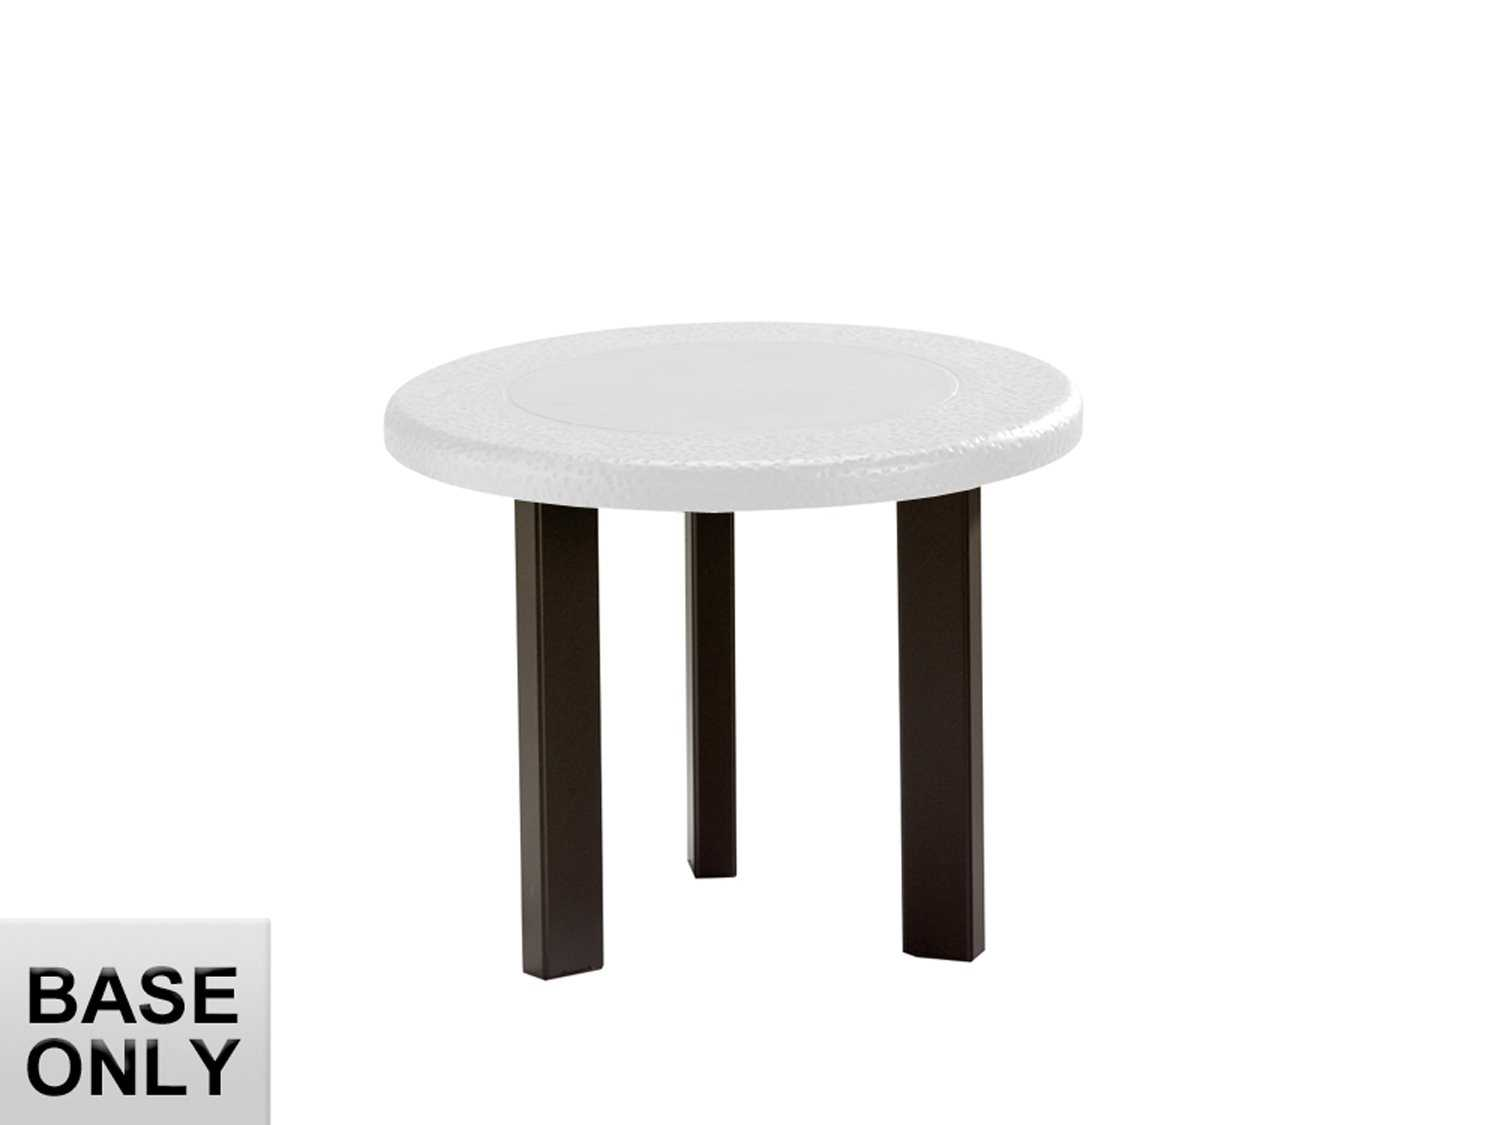 Tropitone Bases Cast Aluminum Round Coffee Table Base Only 18h Tp730582swb